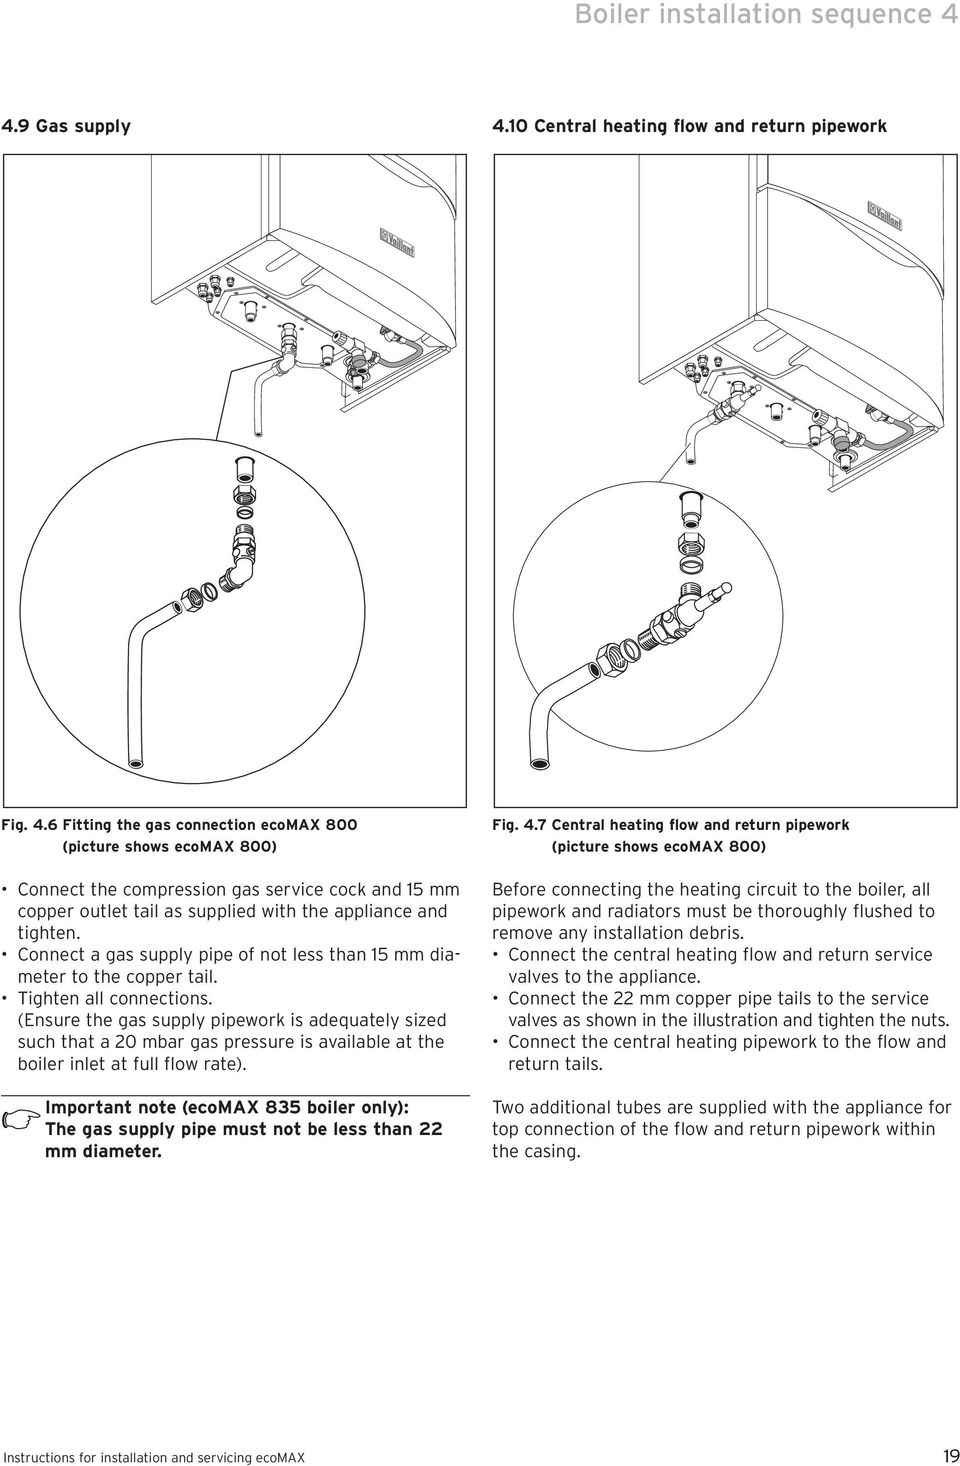 Instructions For Installation And Servicing Ecomax Pdf Quantec Wiring Connect A Gas Supply Pipe Of Not Less Than 5 Mm Diameter To The Copper Tail